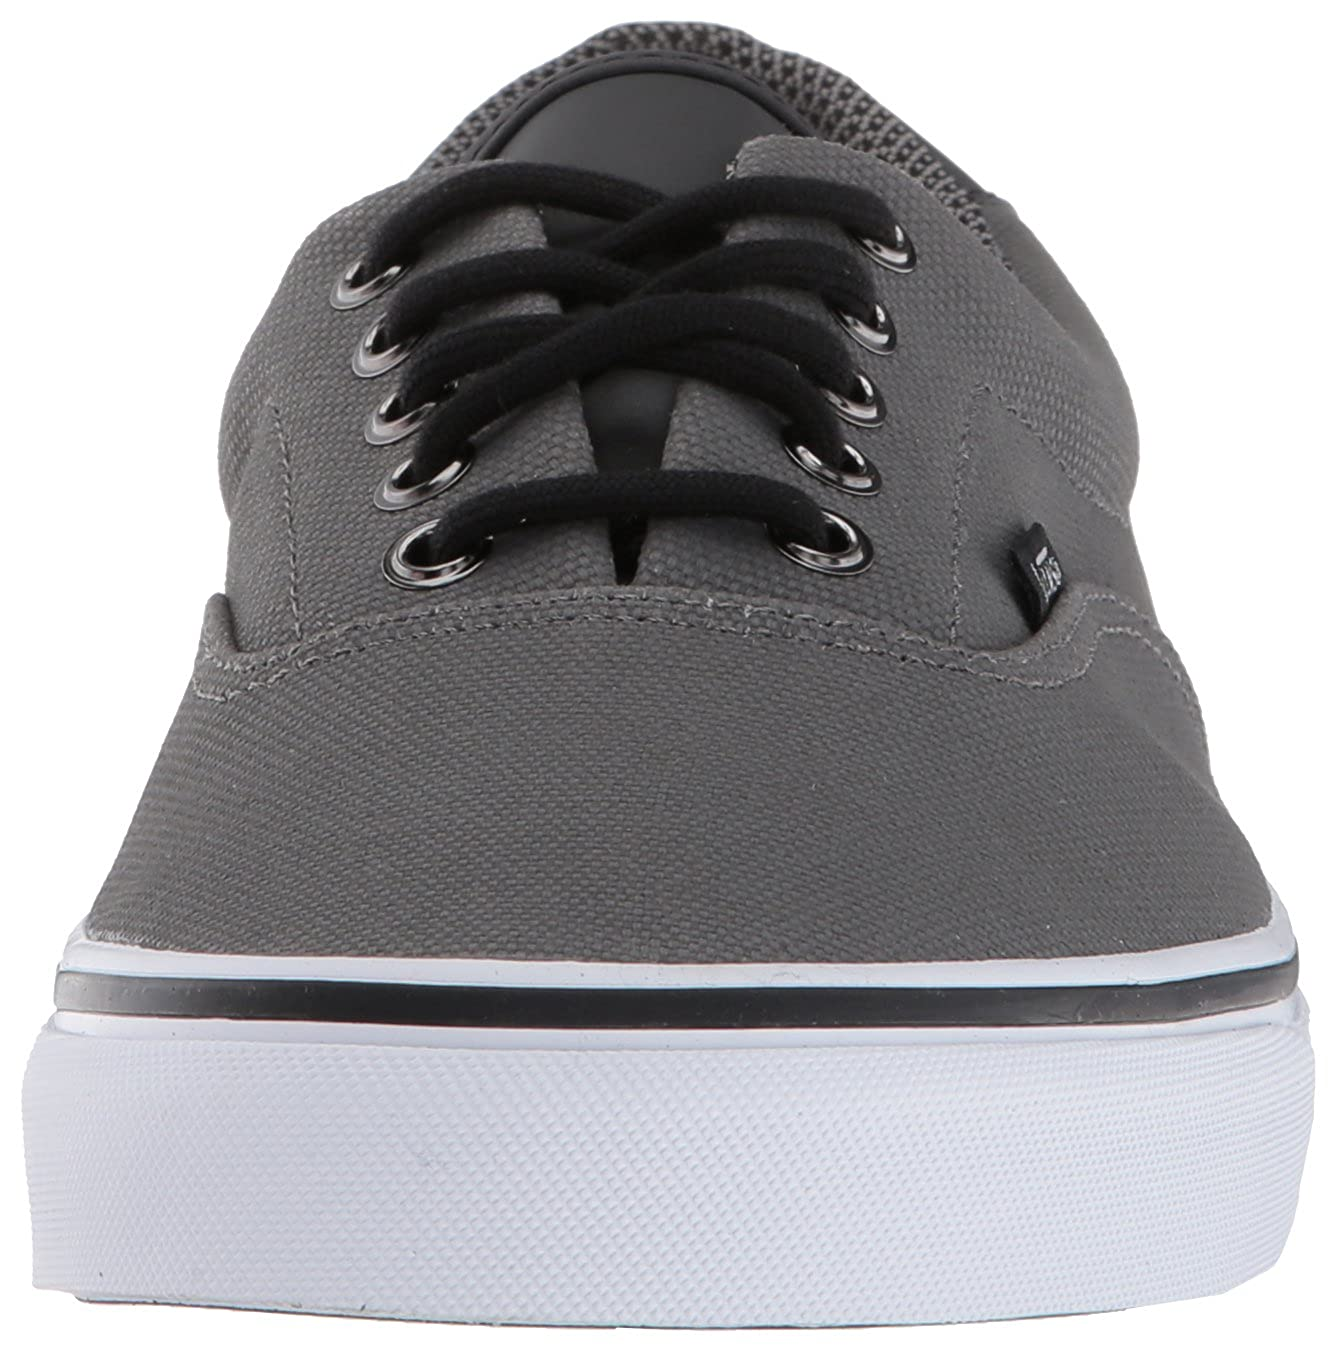 a8fc793fb16 Vans Men s s Era 59 Low-Top Sneakers  Amazon.co.uk  Shoes   Bags